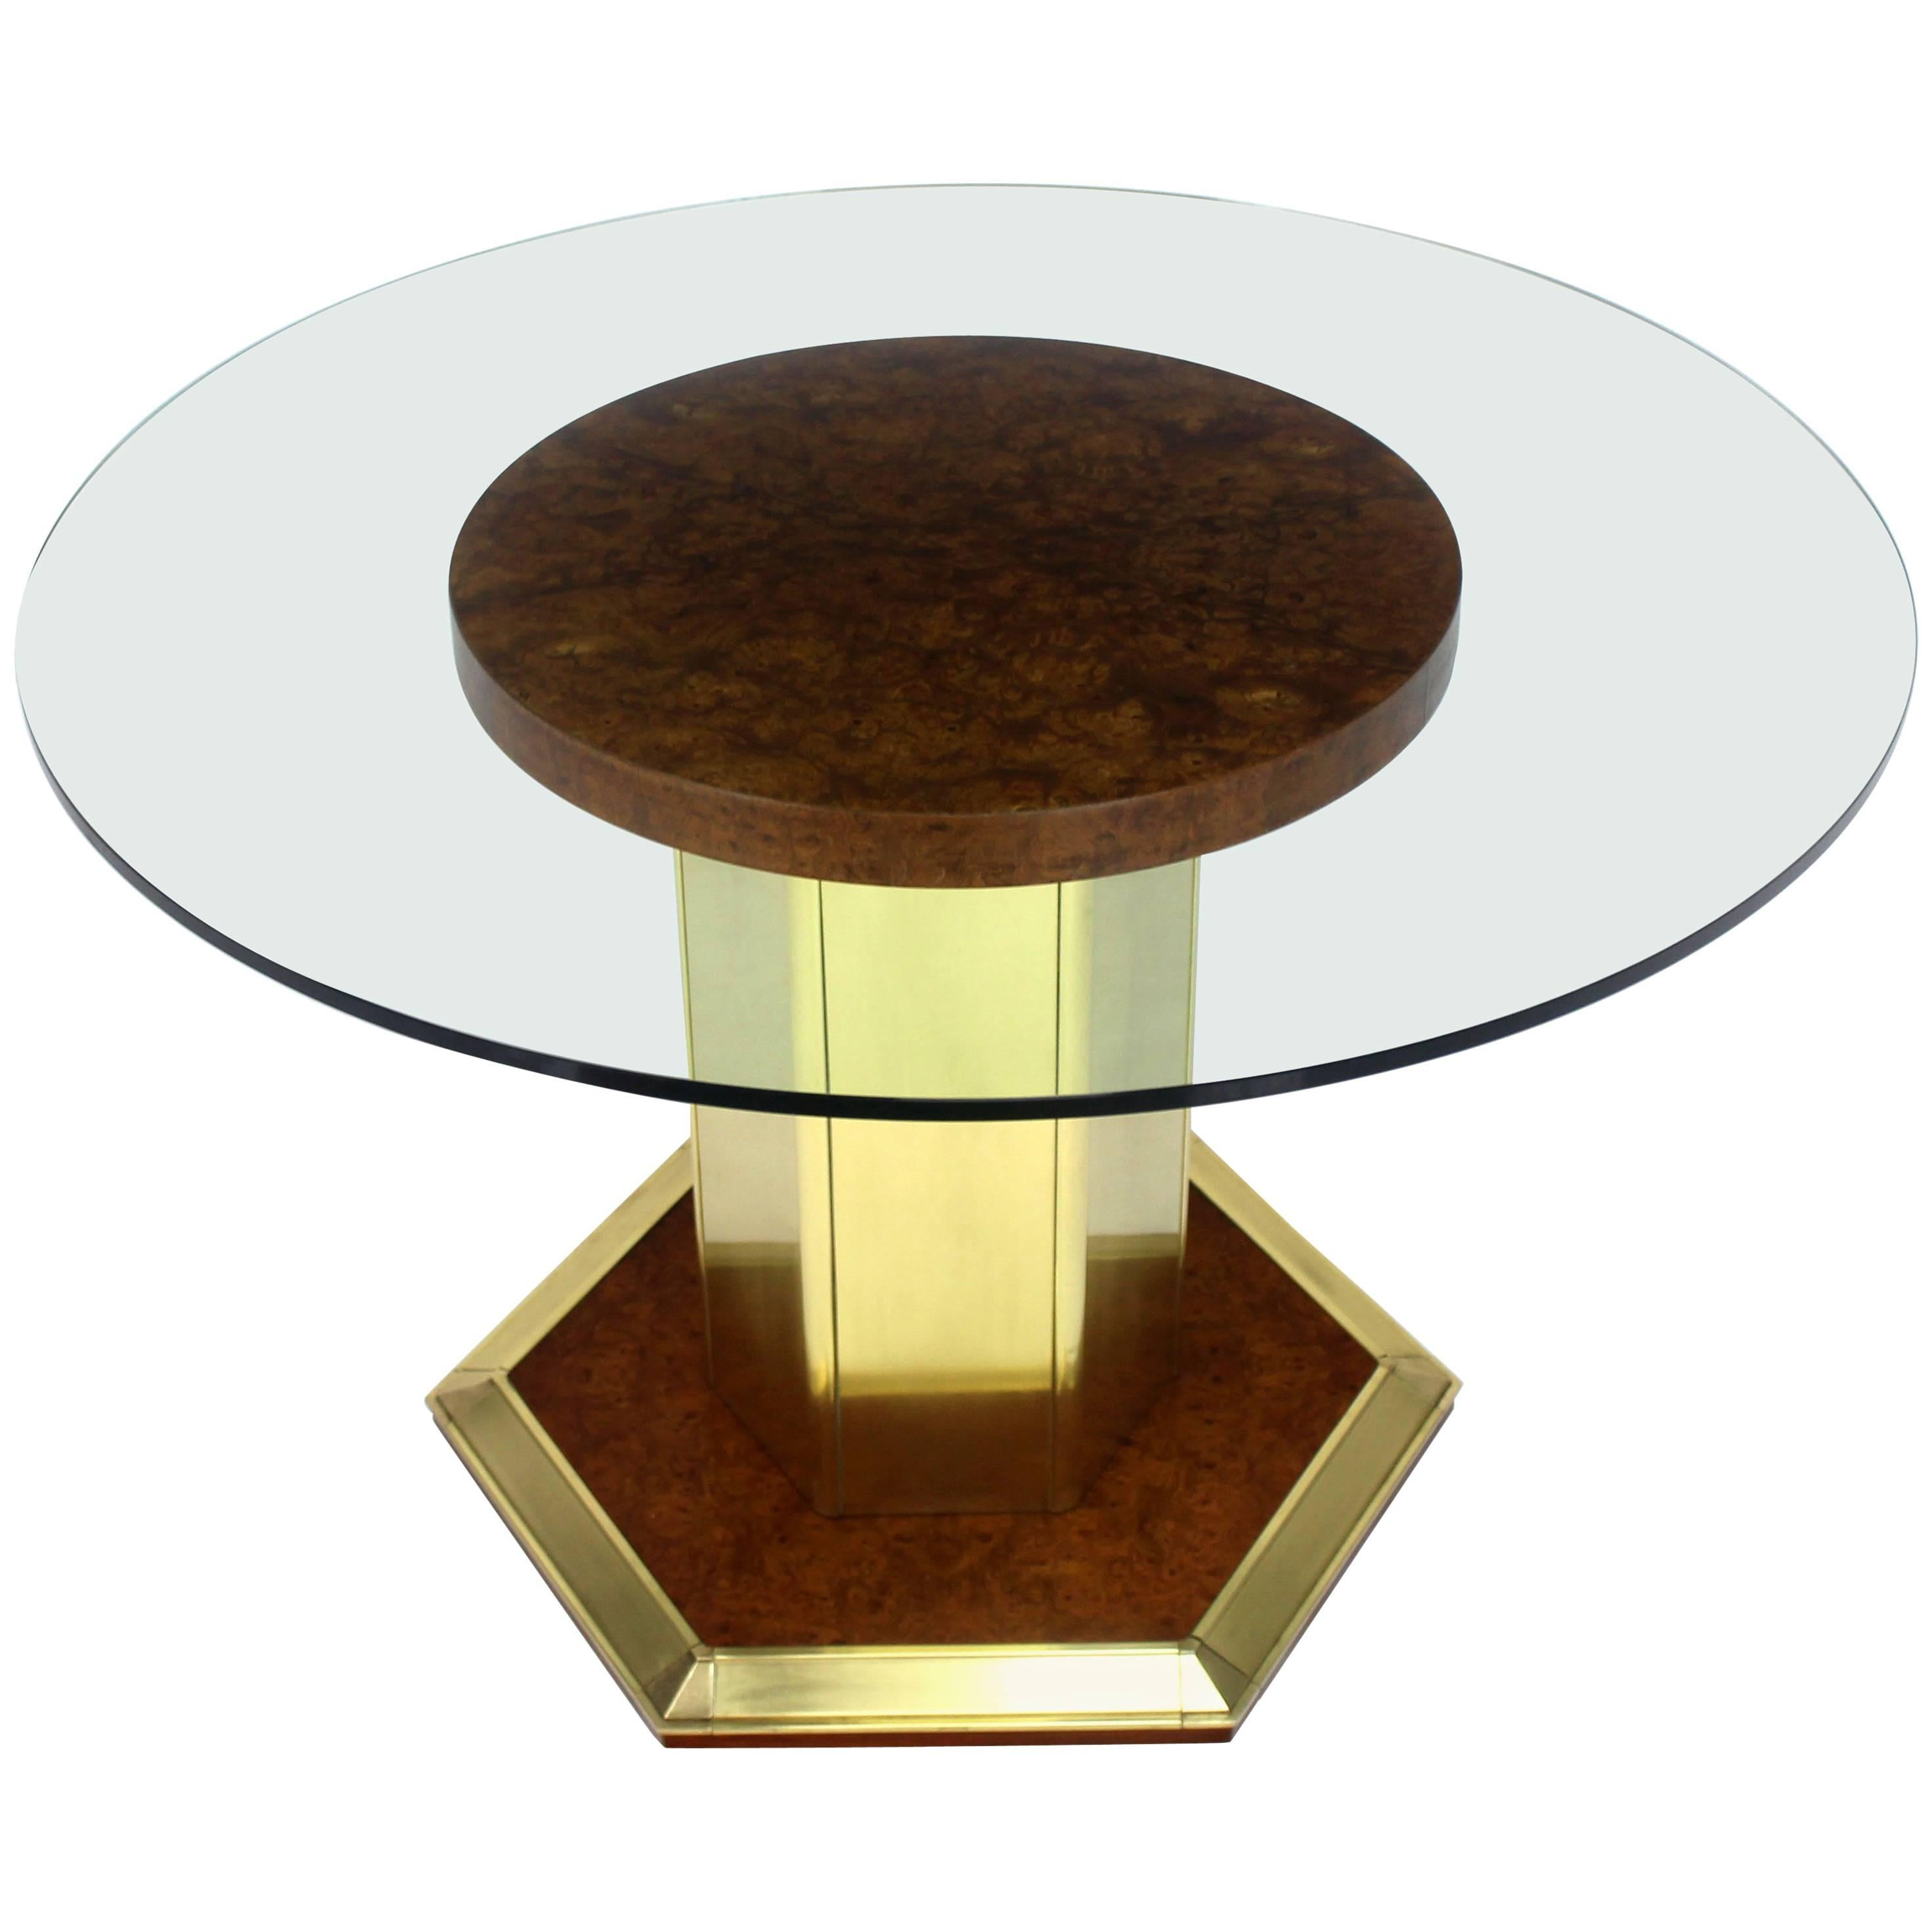 Round Brass Burl Wood Glass Top Center Dining Conference Table Henredon For  Sale